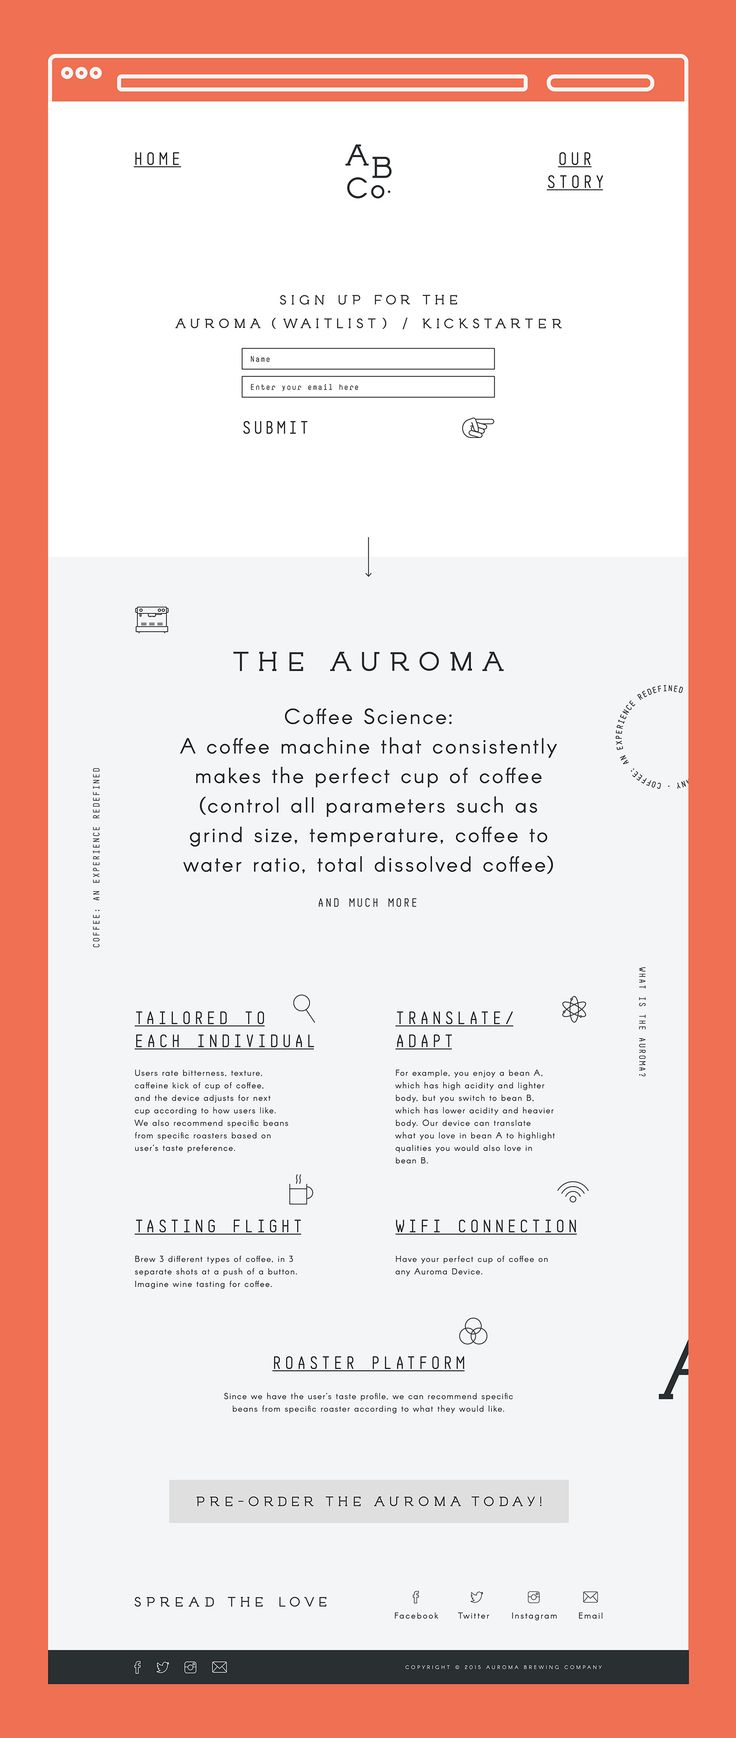 The Science of Art. Notably regarded with simplicity and functionality together with processes & ratio, brewing parameters and precision control to coffee grounds derives a unique product, the Auroma One - a coffee science machine invented and campaigned …